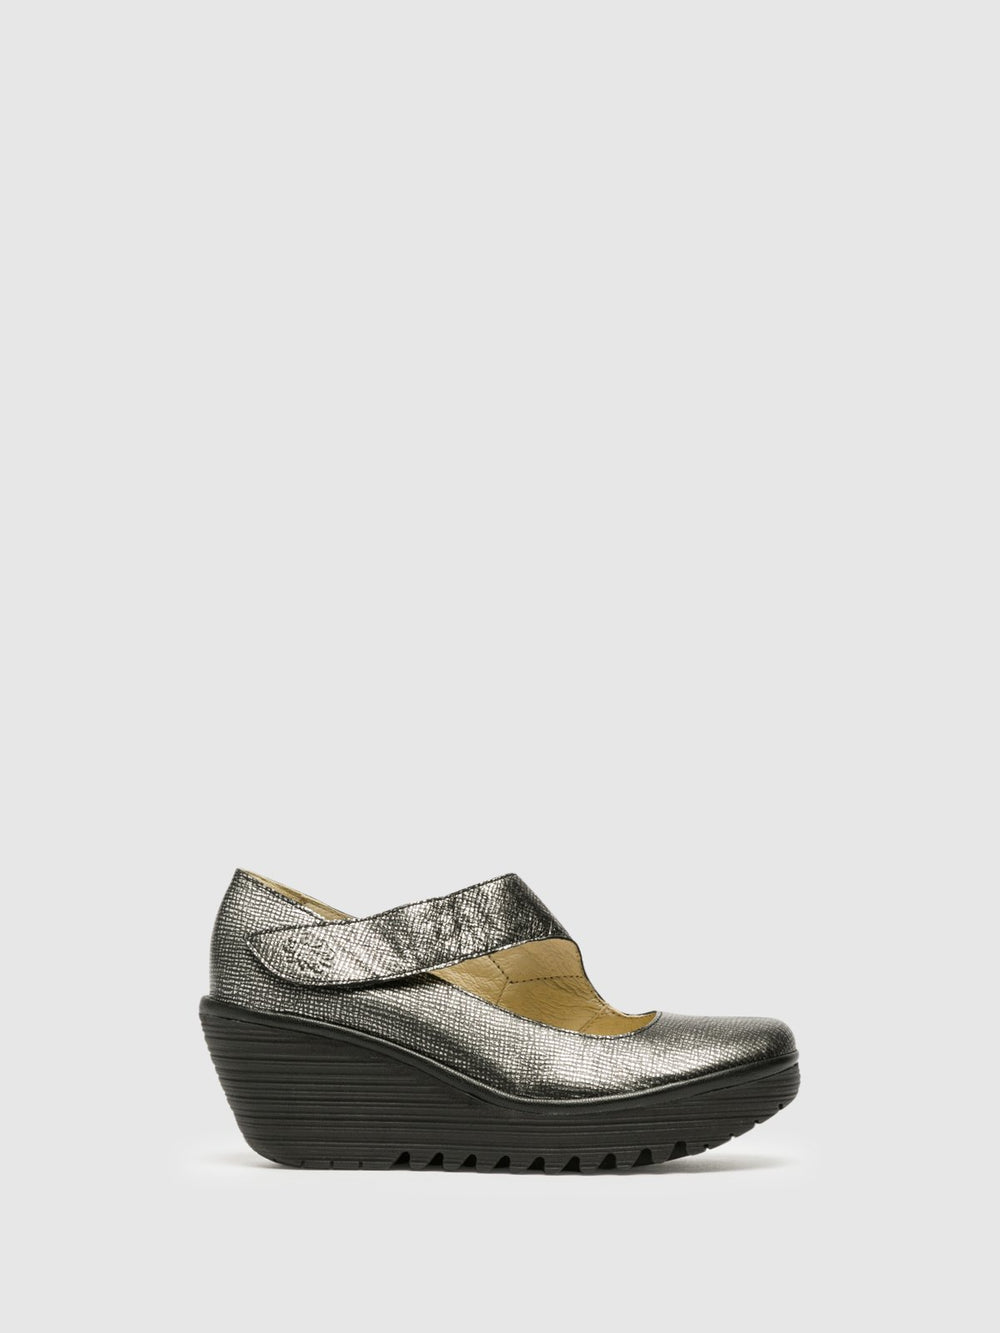 LightGray Wedge Shoes